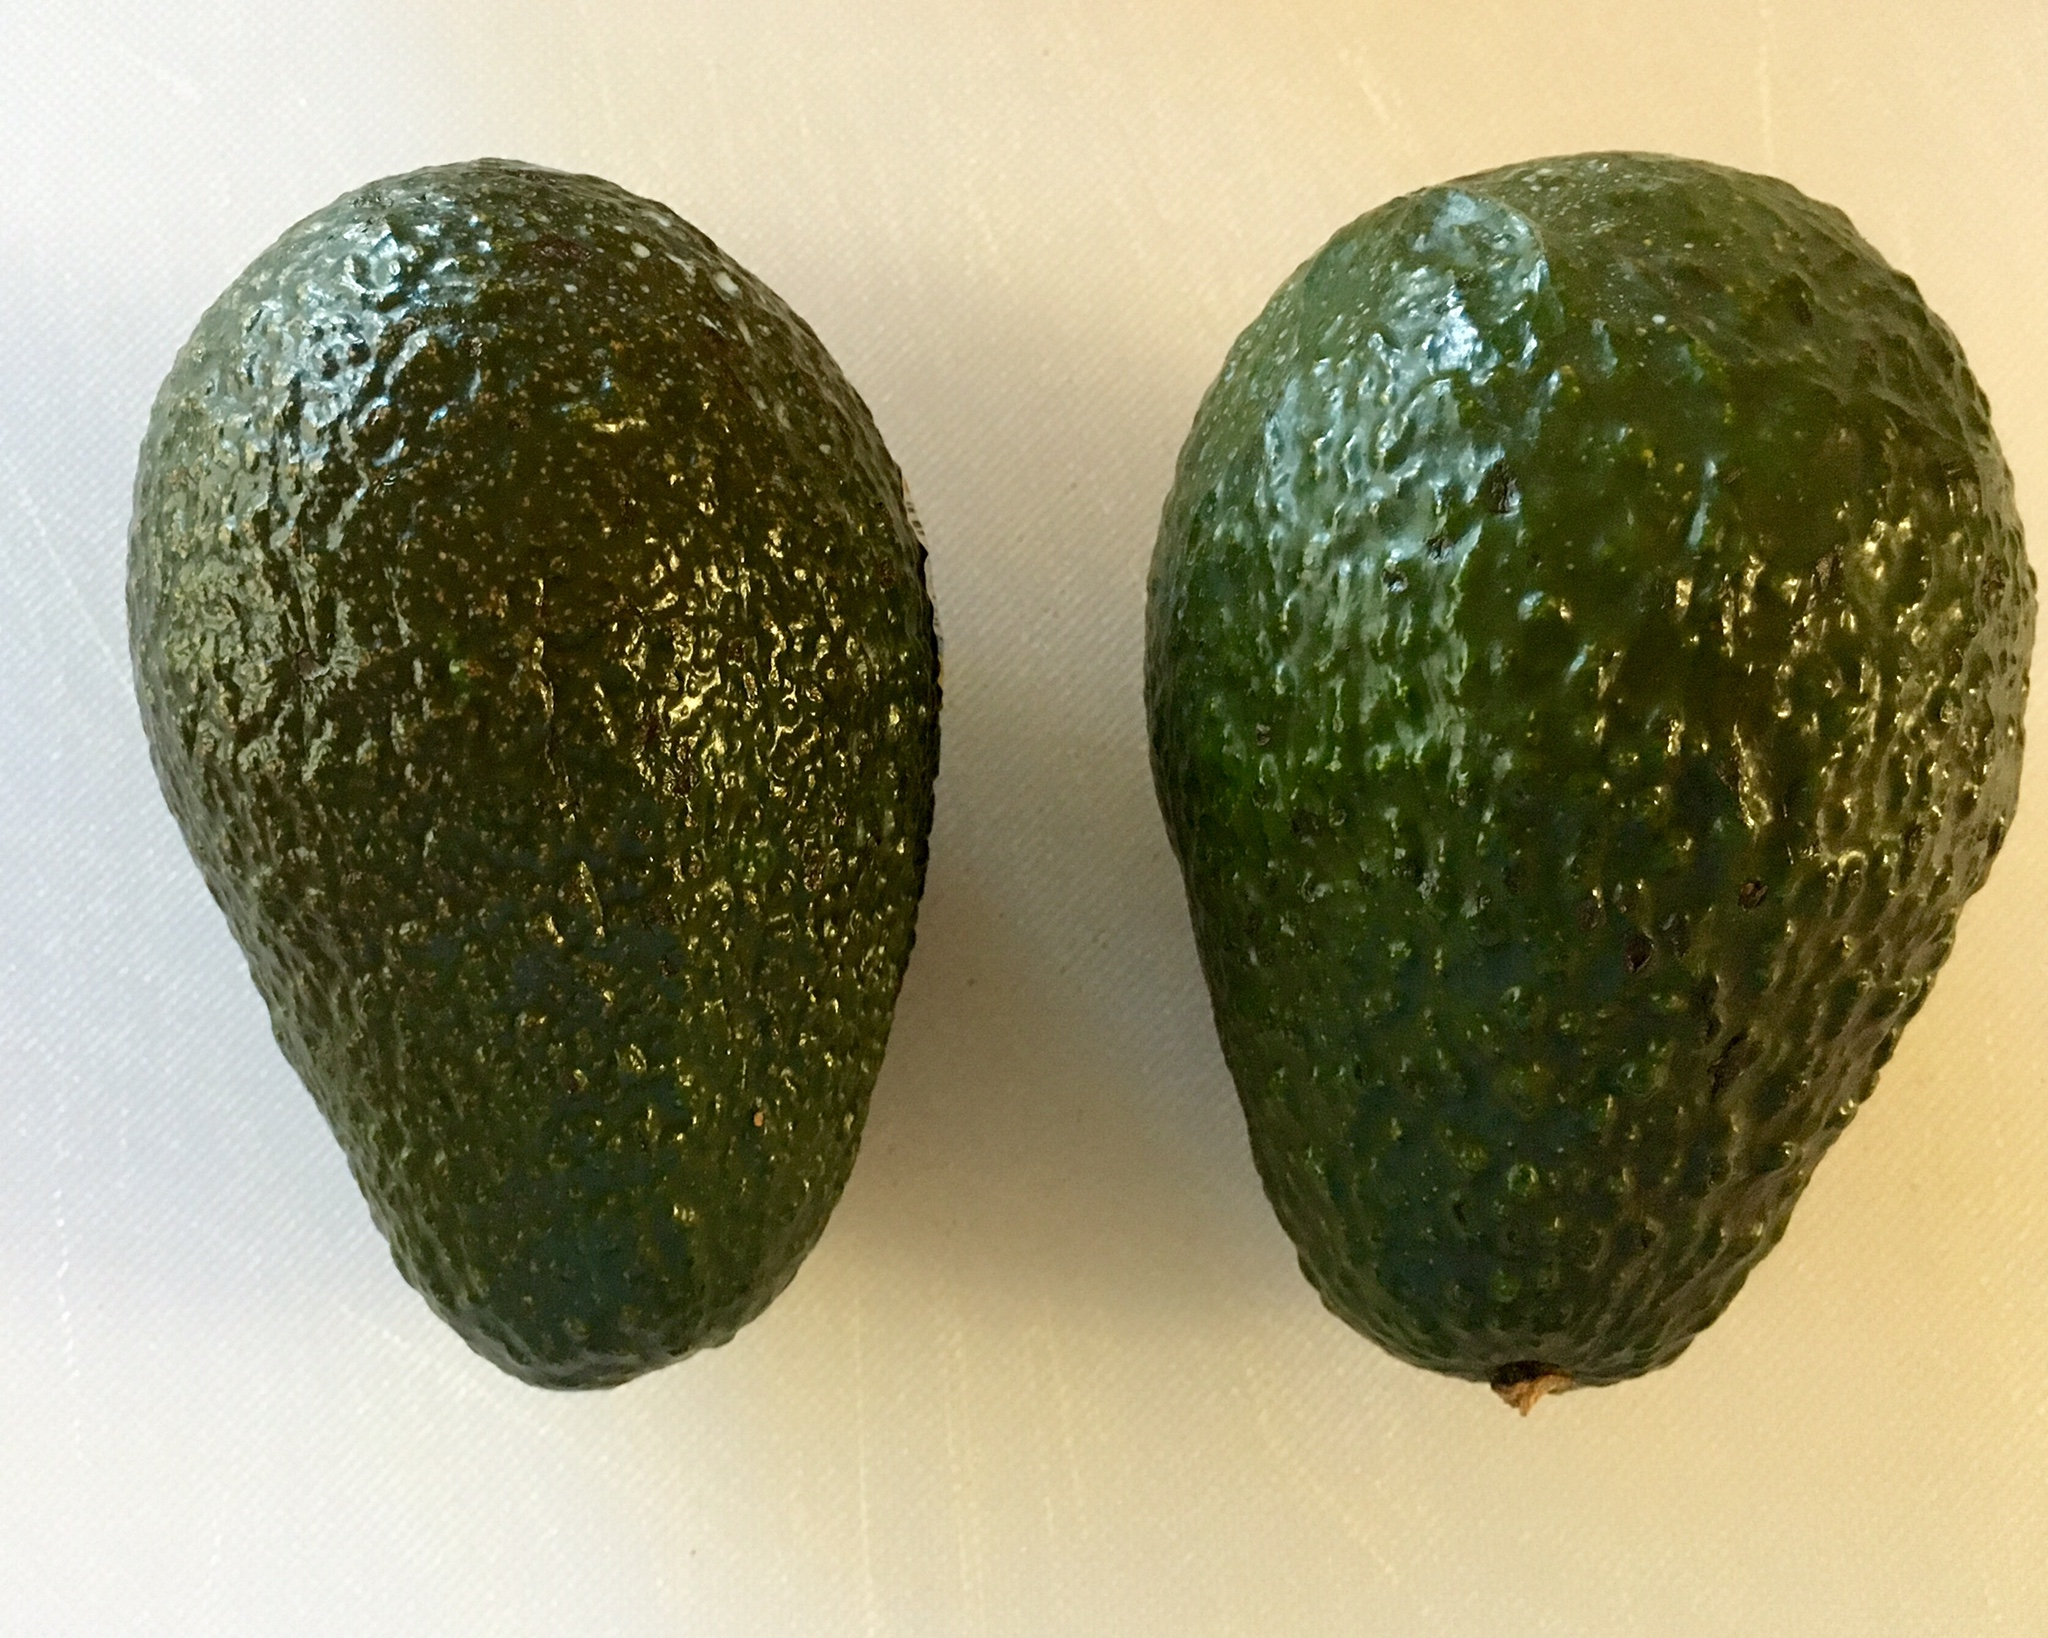 How to Quickly Ripen an Avocado